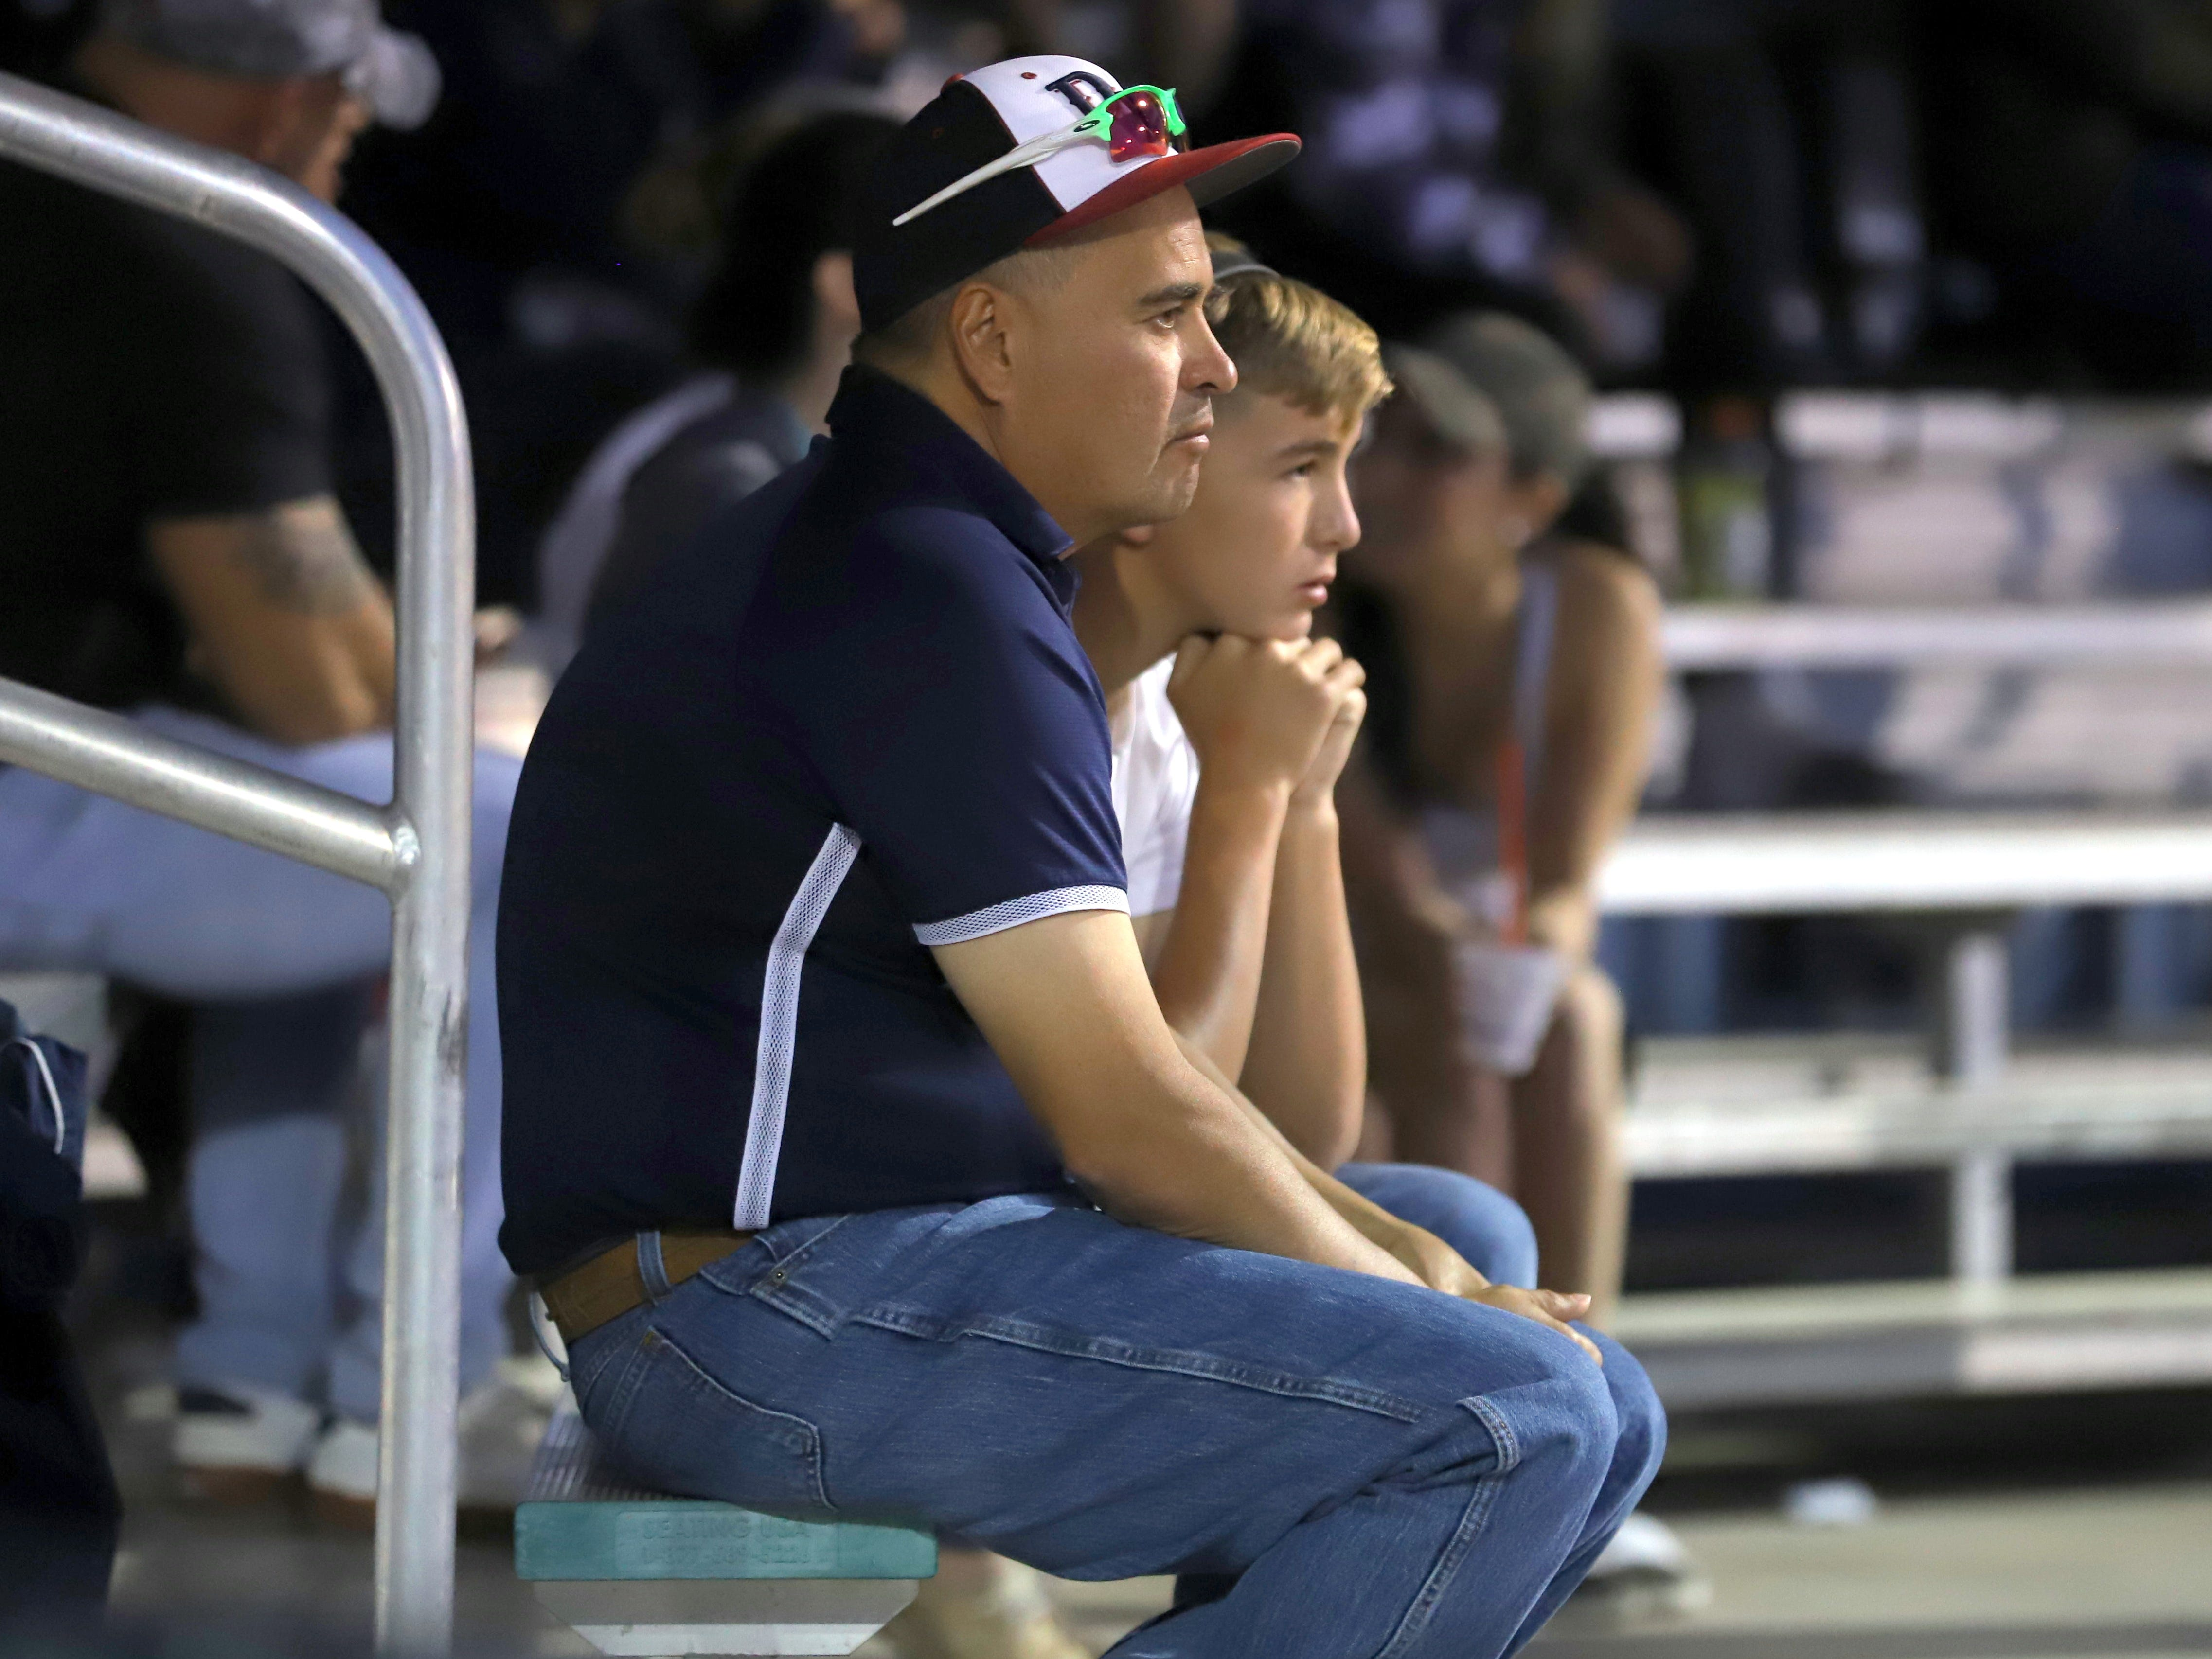 Wildcat dad Adrian Apodaca and his son   take in a tense moment in the ball game between Deming and Centennial.